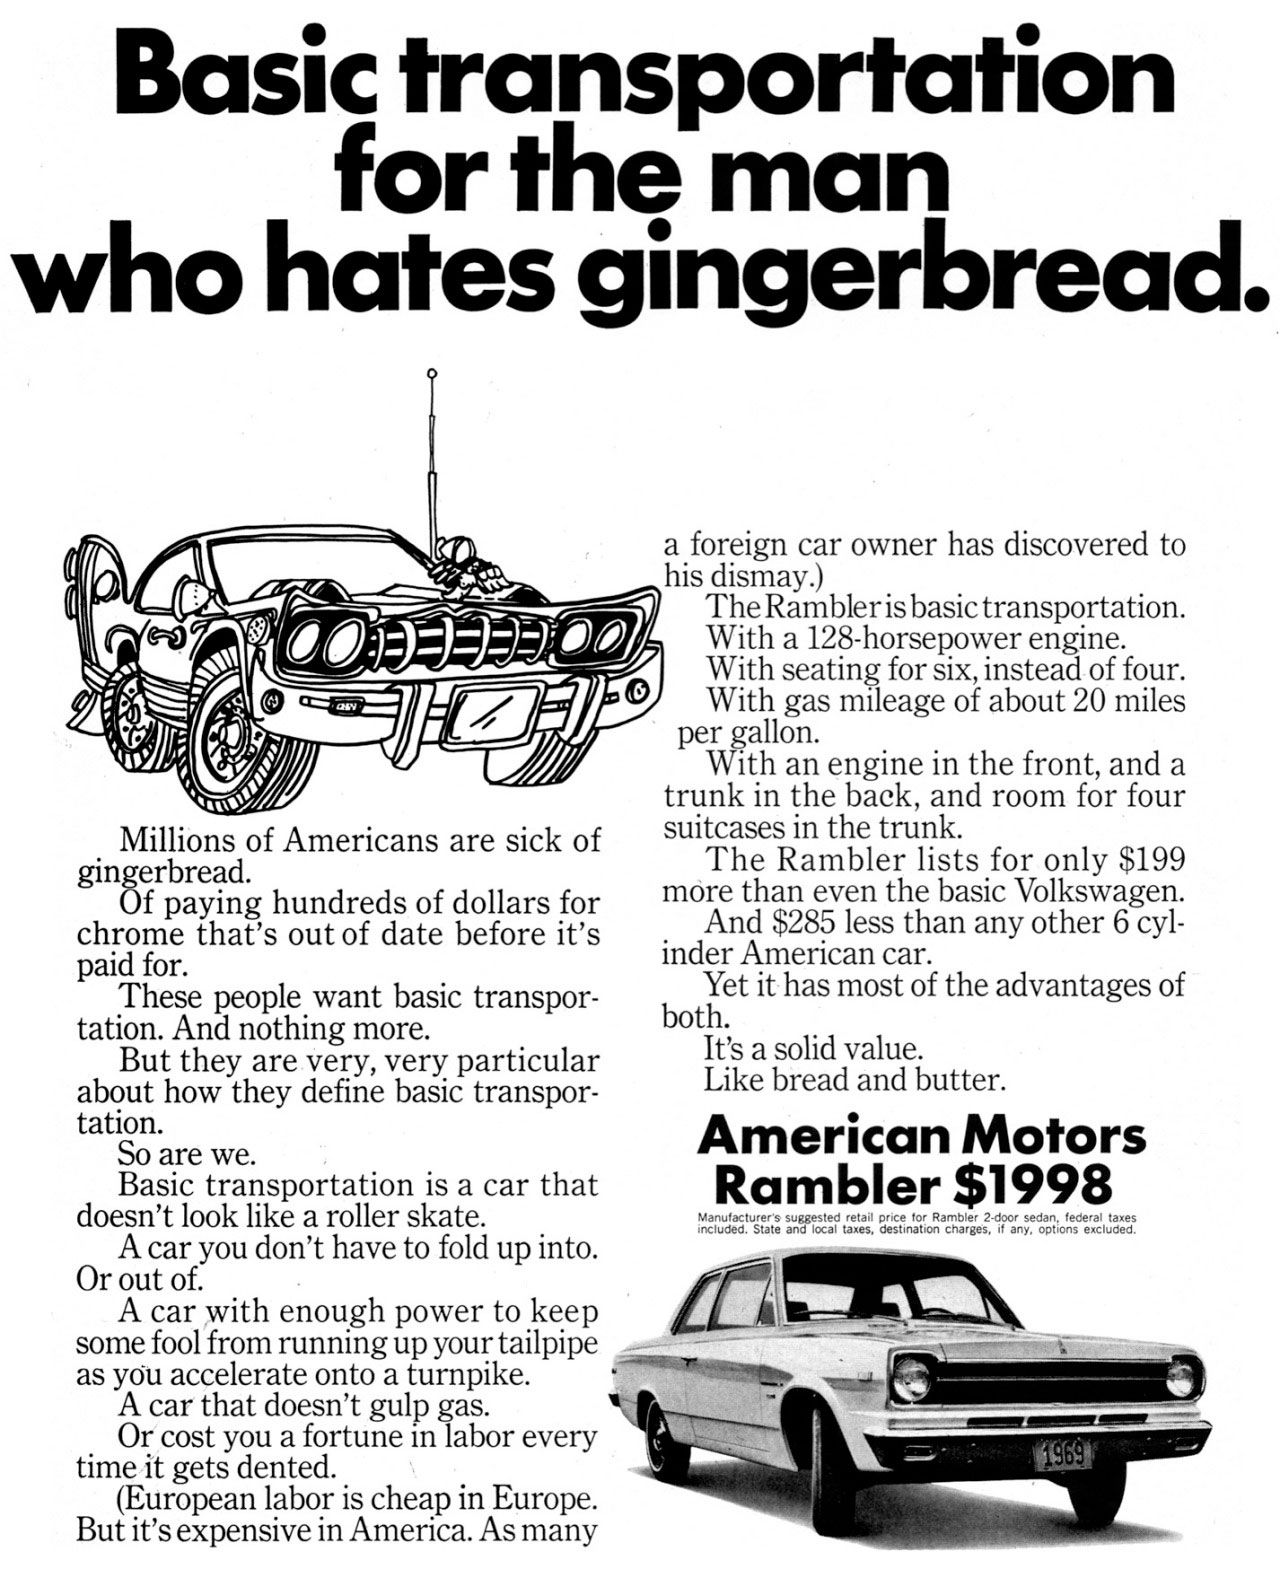 The American Motors Rambler. Basic transportation for the man who hates gingerbread.